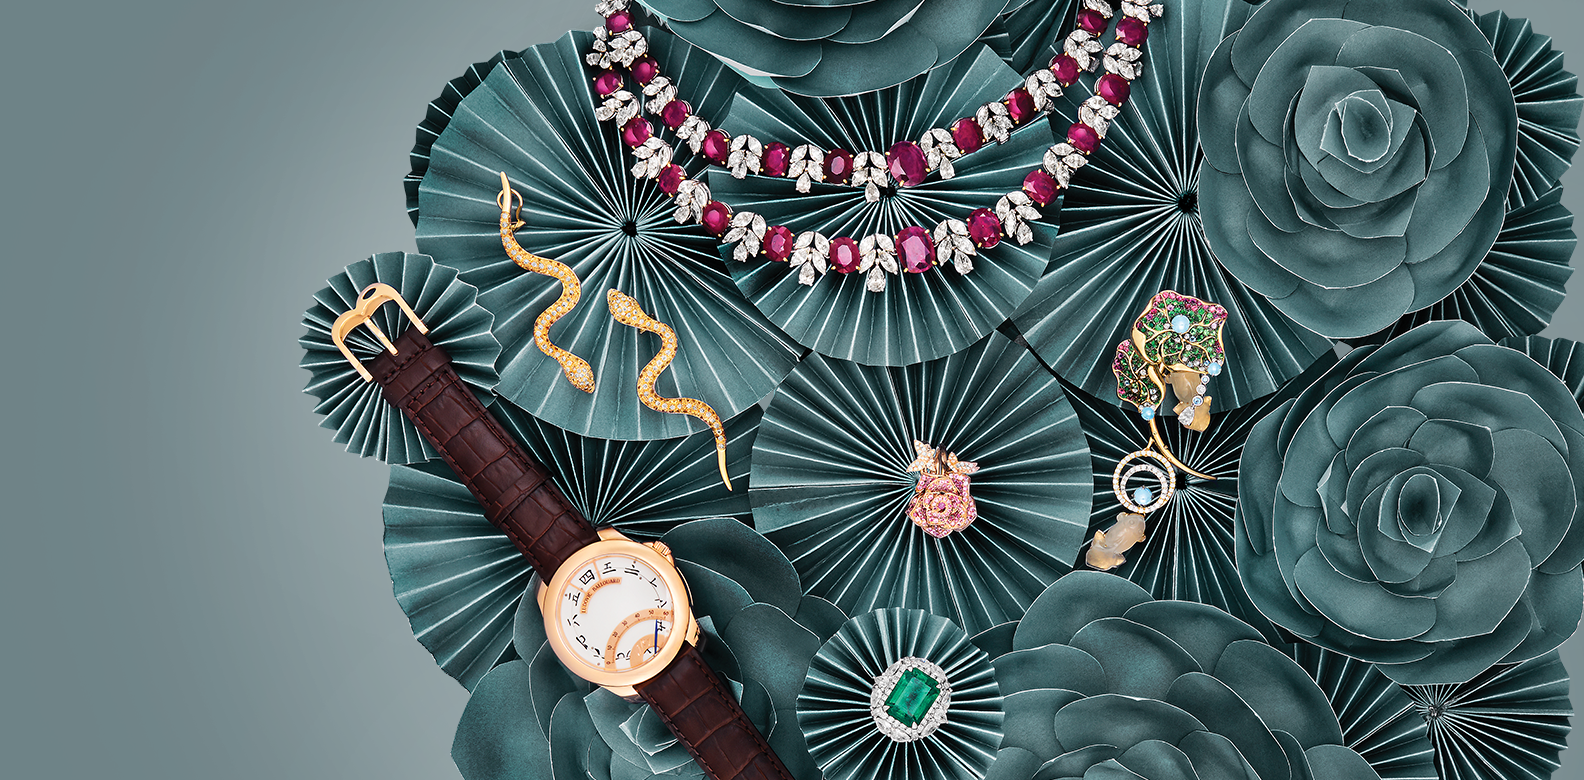 Asia's Biggest Jewels And Time Festival Is Back: Here's What To Expect